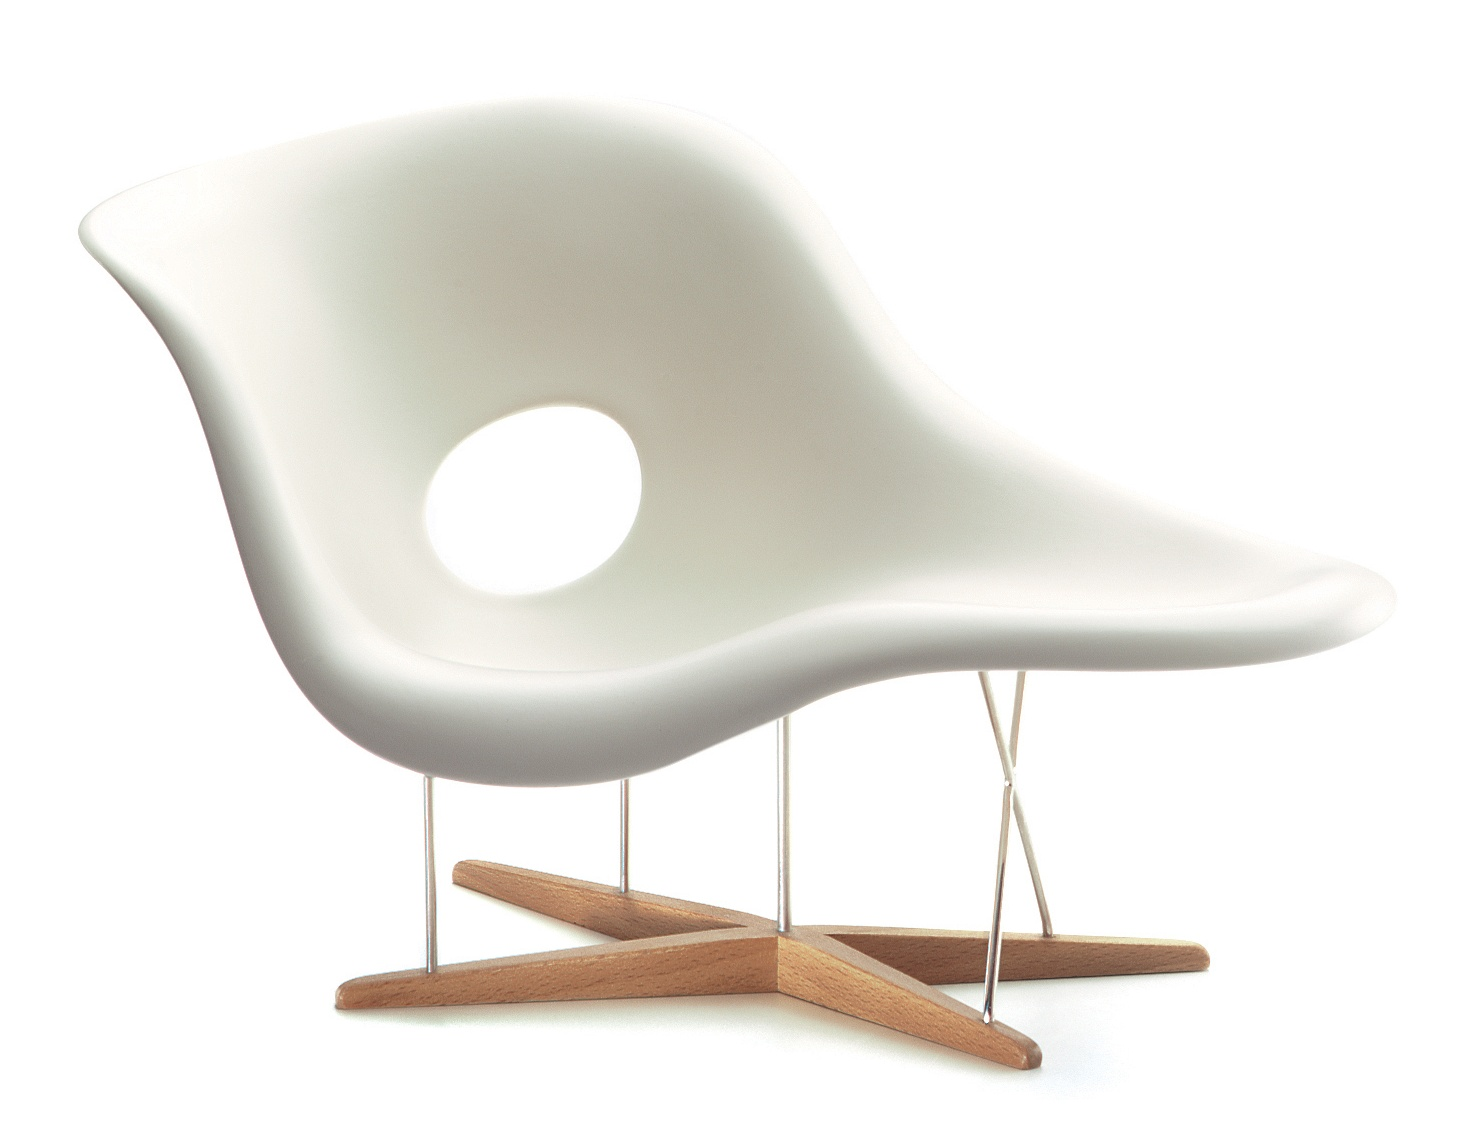 Amazing Iconic Furniture. Designers\u0027 Work To Be Protected For Longer Under New  Copyright Ruling